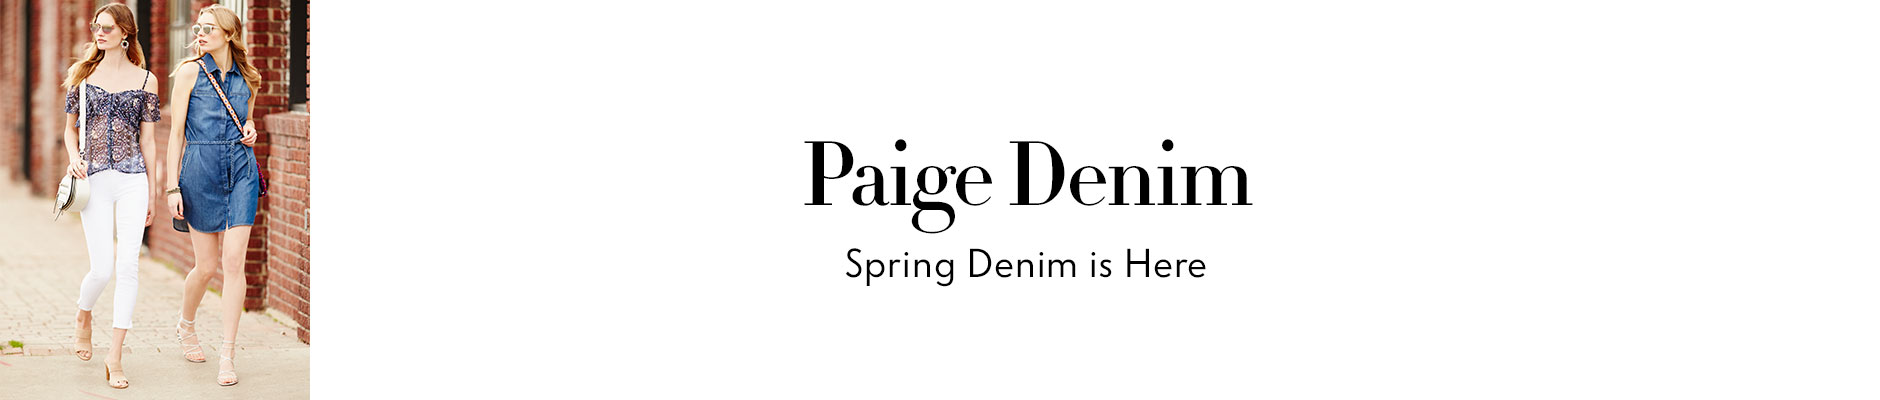 Paige Denim - spring denim is here